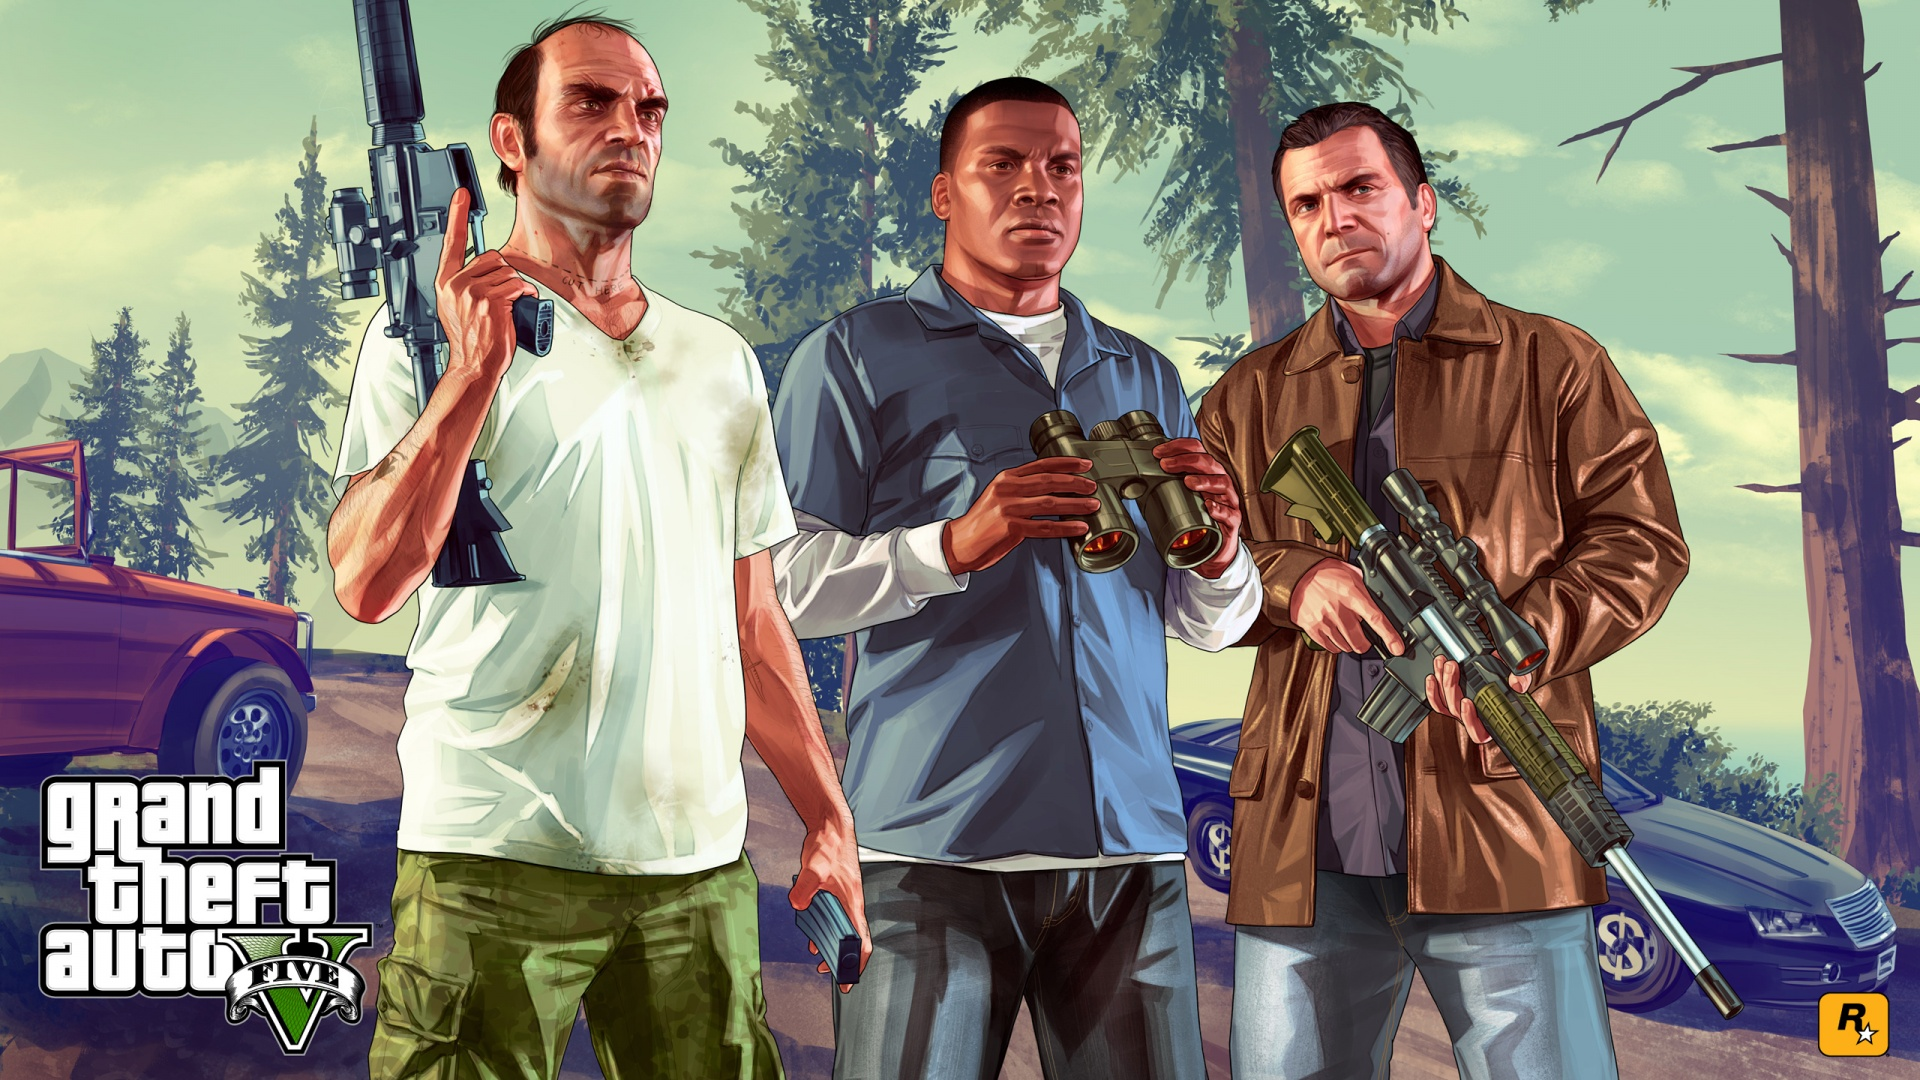 Grand Theft Auto GTA 5 Wallpapers HD Wallpapers 1920x1080